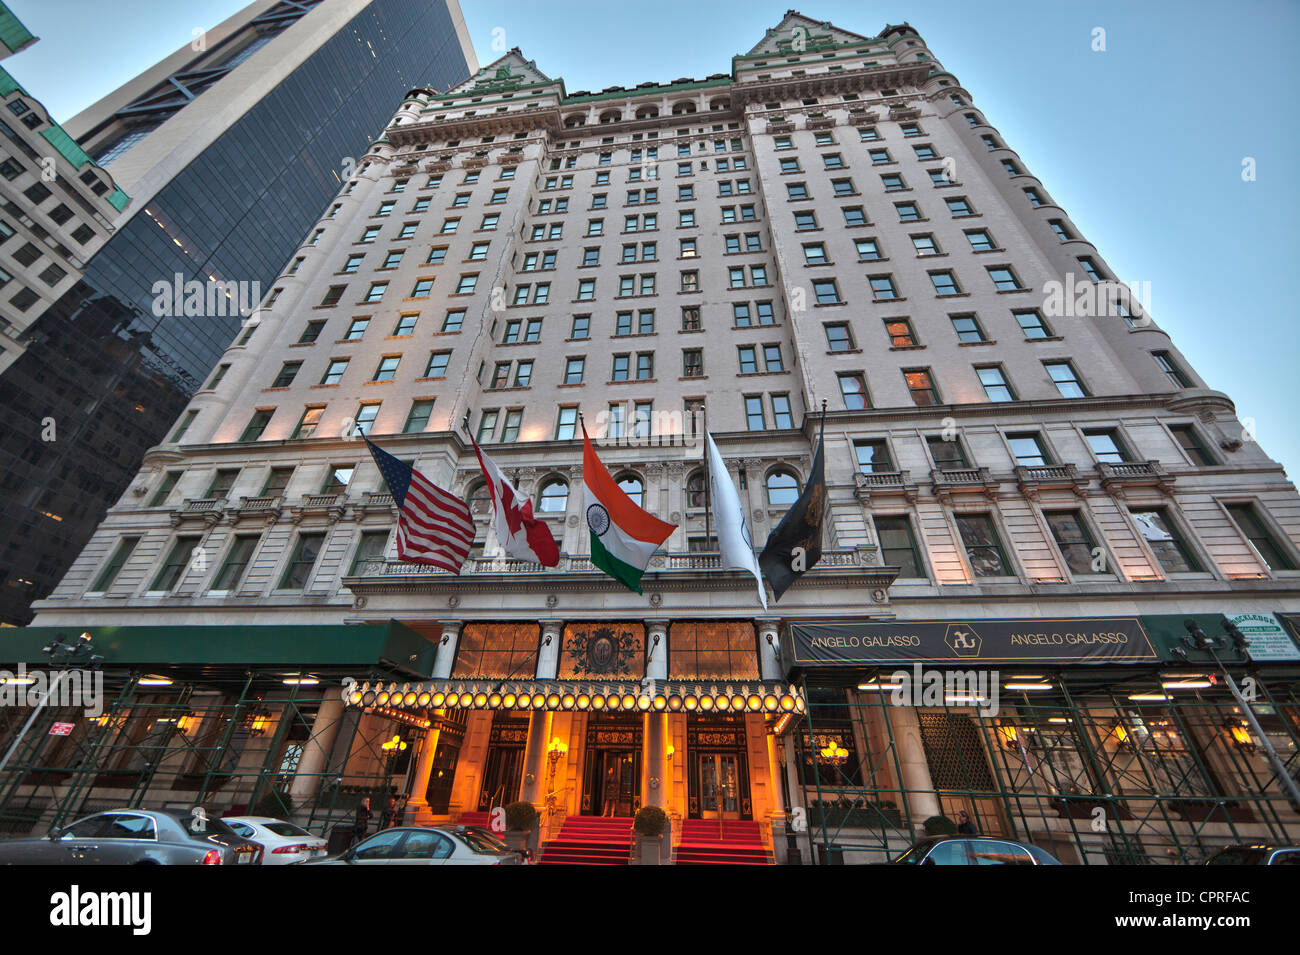 the plaza hotel owned by fairmont hotels in manhattan new york city stock photo royalty free. Black Bedroom Furniture Sets. Home Design Ideas